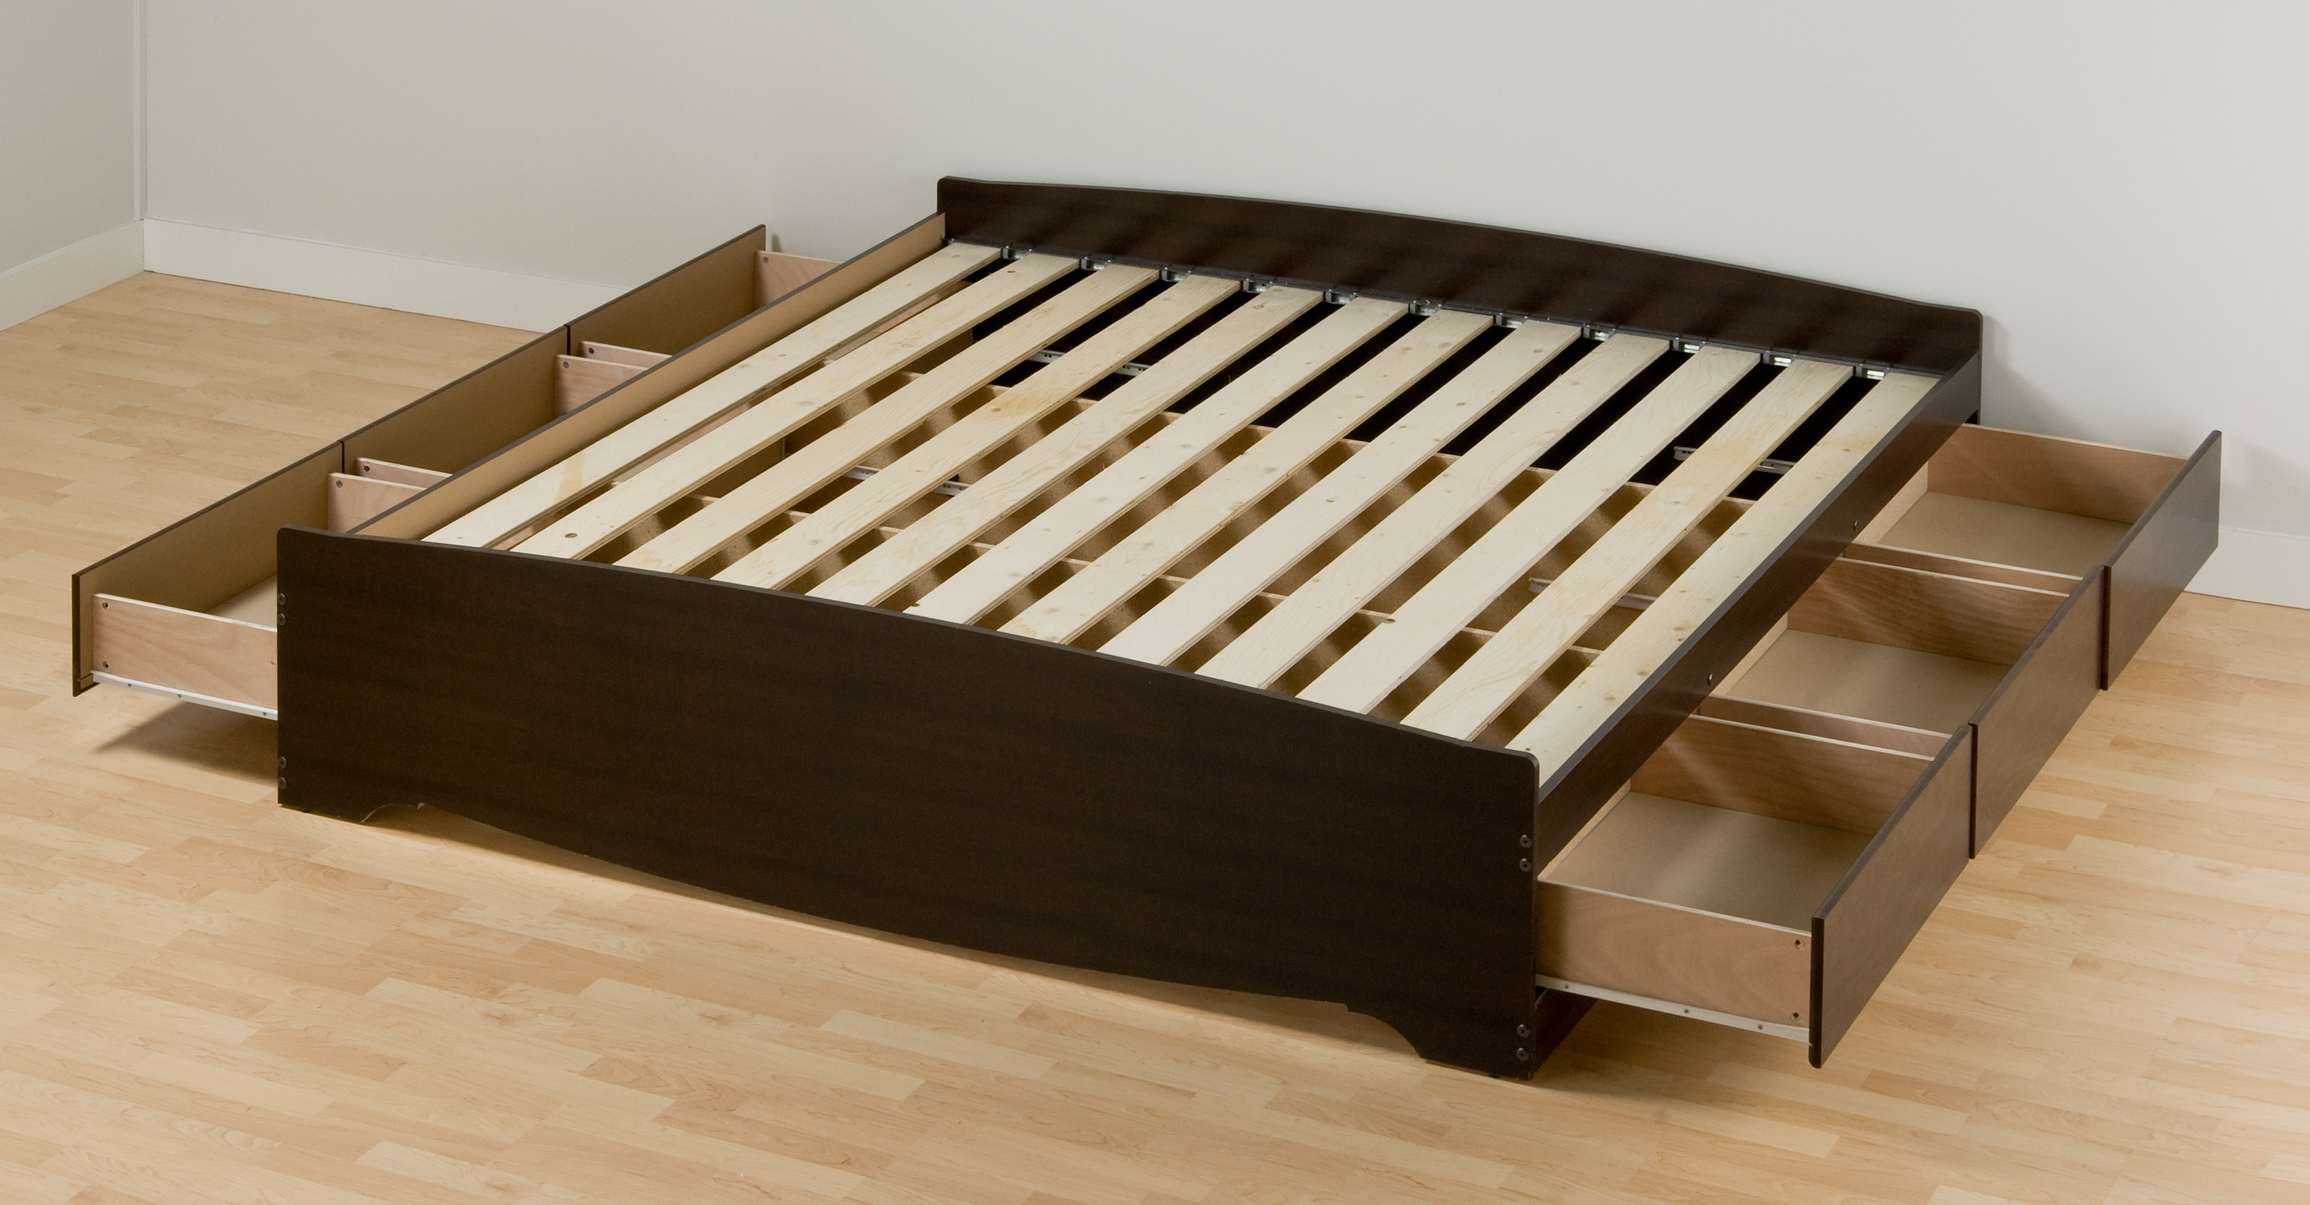 Permalink to Wood Bed Frames Without Headboard